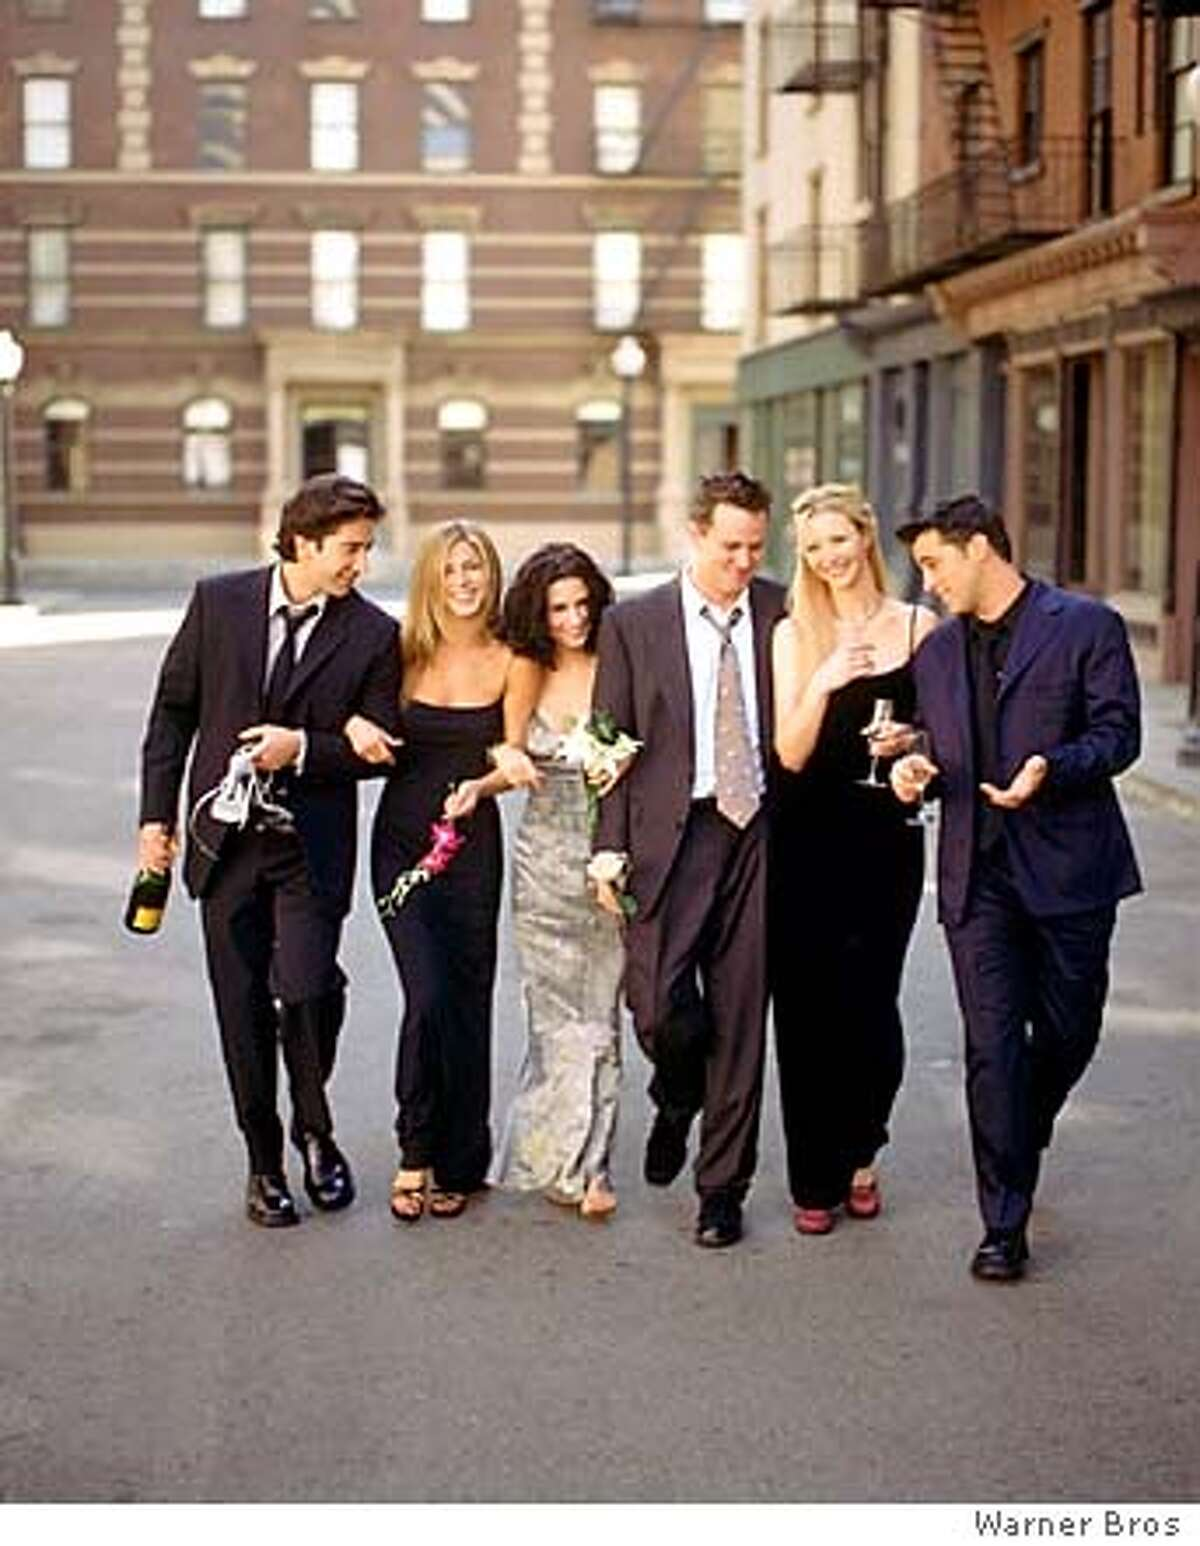 CARMAN12B-C-11OCT00-DD-NBC--FRIENDS -- NBC Series -- Pictured: David Schwimmer as Ross Geller, Jennifer Aniston as Rachel Green, Courteney Cox as Monica Geller, Matthew Perry as Chandler Bing, Lisa Kudrow as Phoebe Buffay, Matt LeBlanc as Joey Tribbiani -- Photo Provided By: Warner Bros. HANDOUT ALSO RAN 5/16/02 CAT